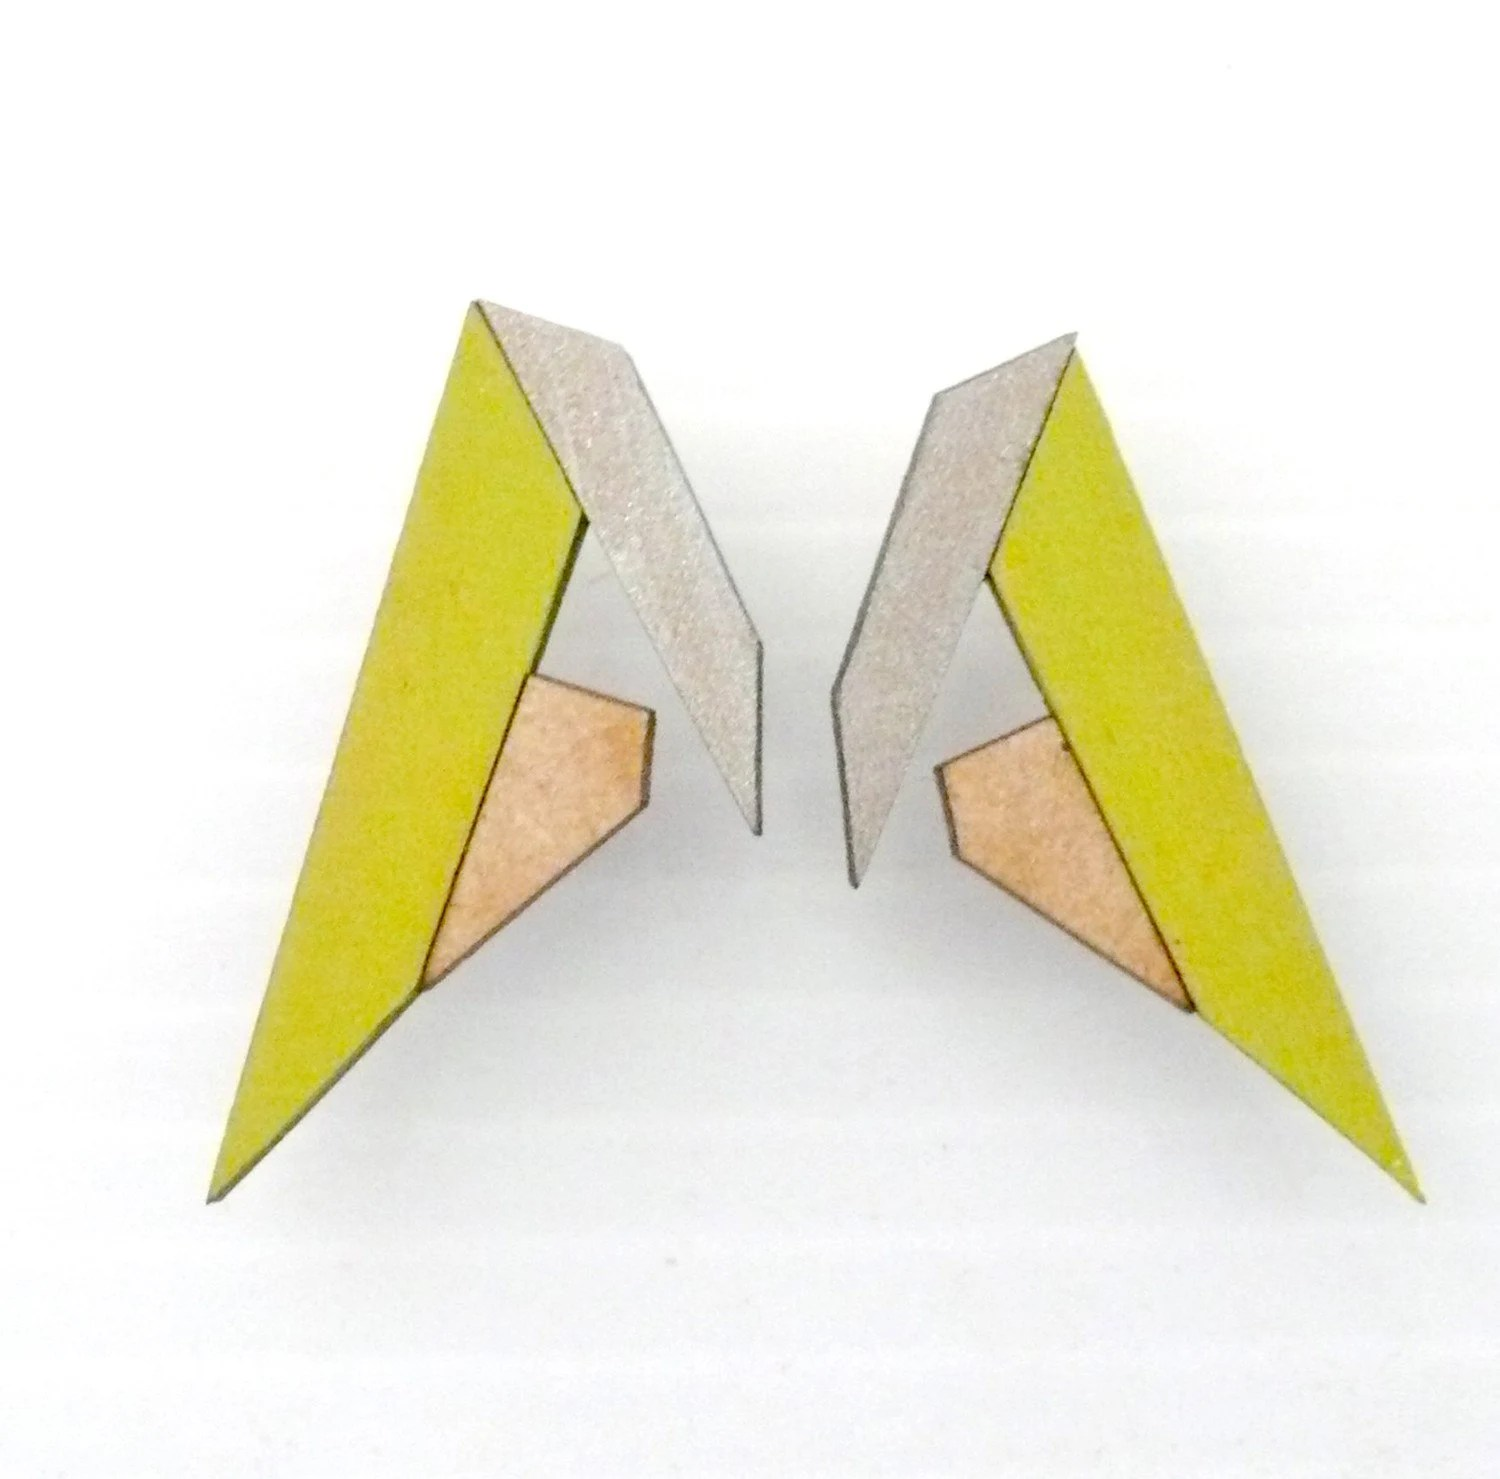 Future Stud Earrings - Lime, Silver & Natural